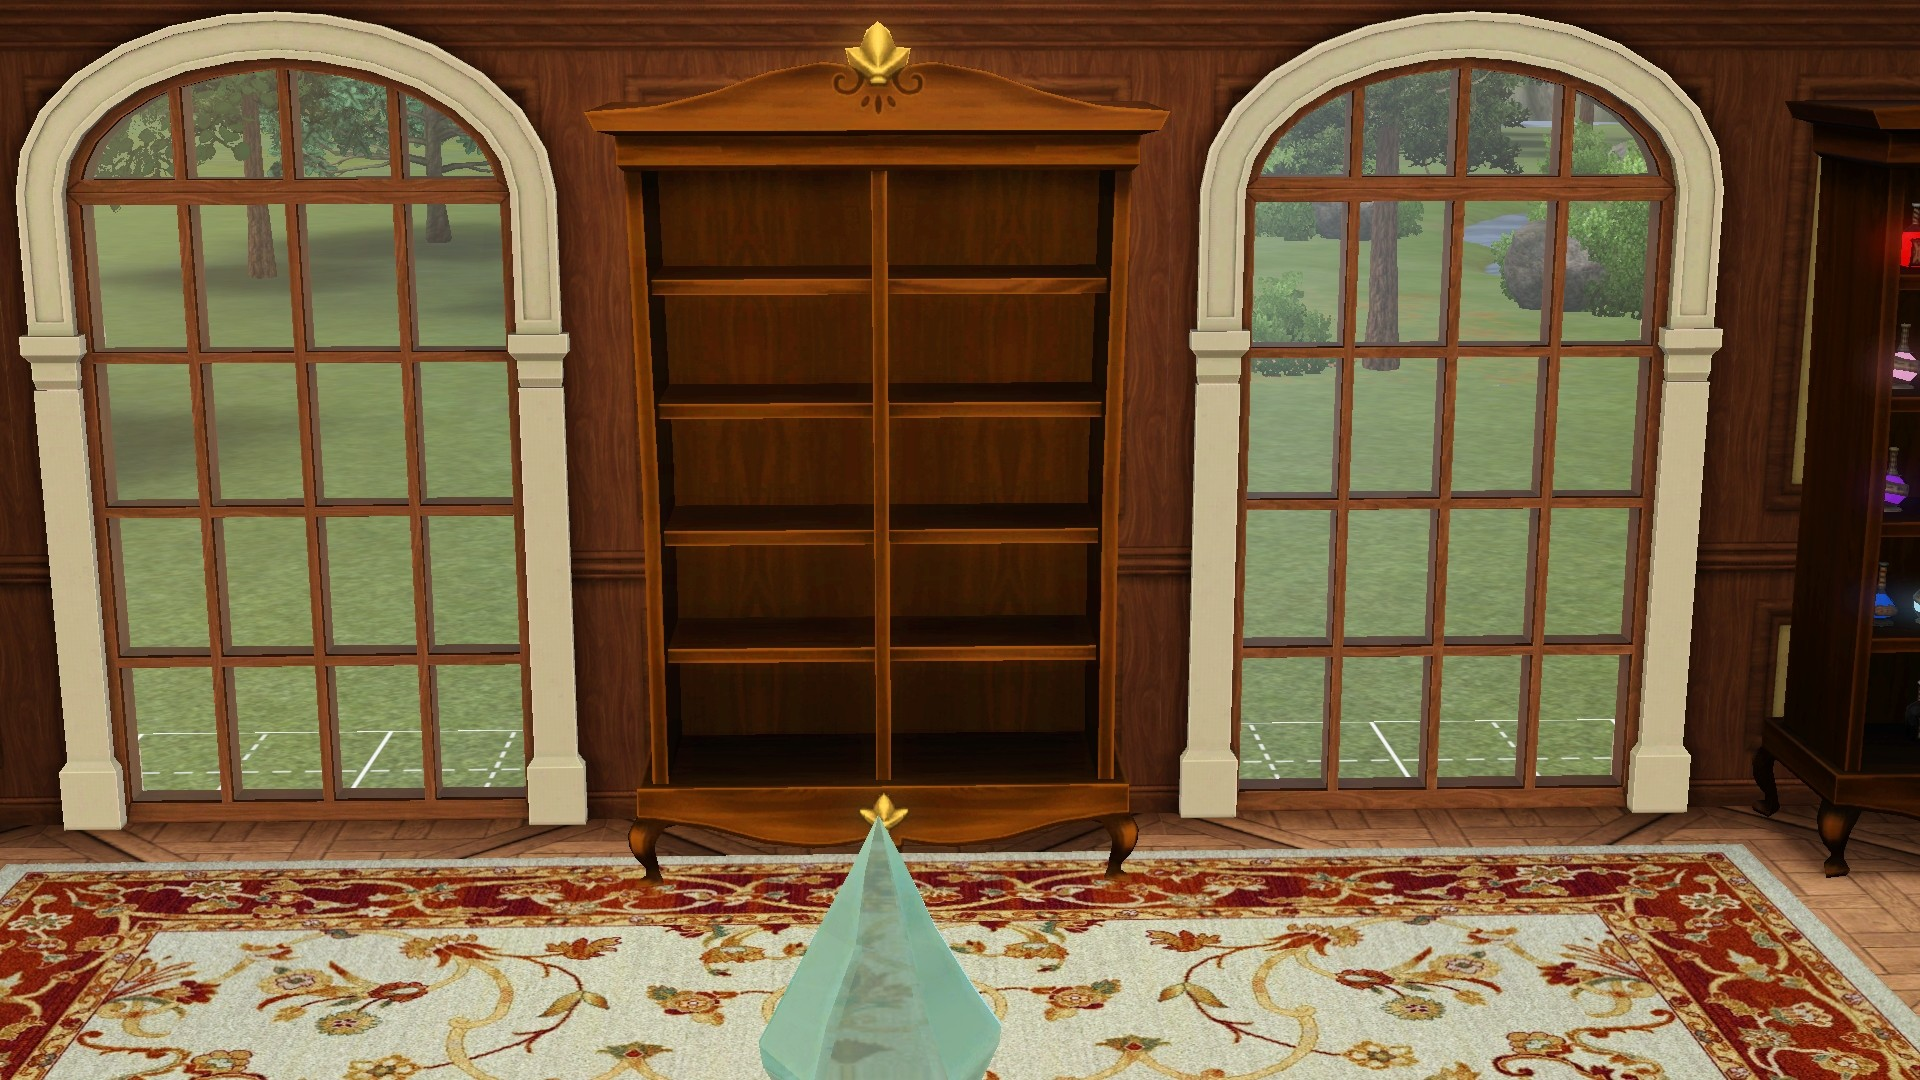 Very Impressive portraiture of Sims 3 Updates Mod The Sims: Princess Cordelia Display Shelves by  with #361909 color and 1920x1080 pixels